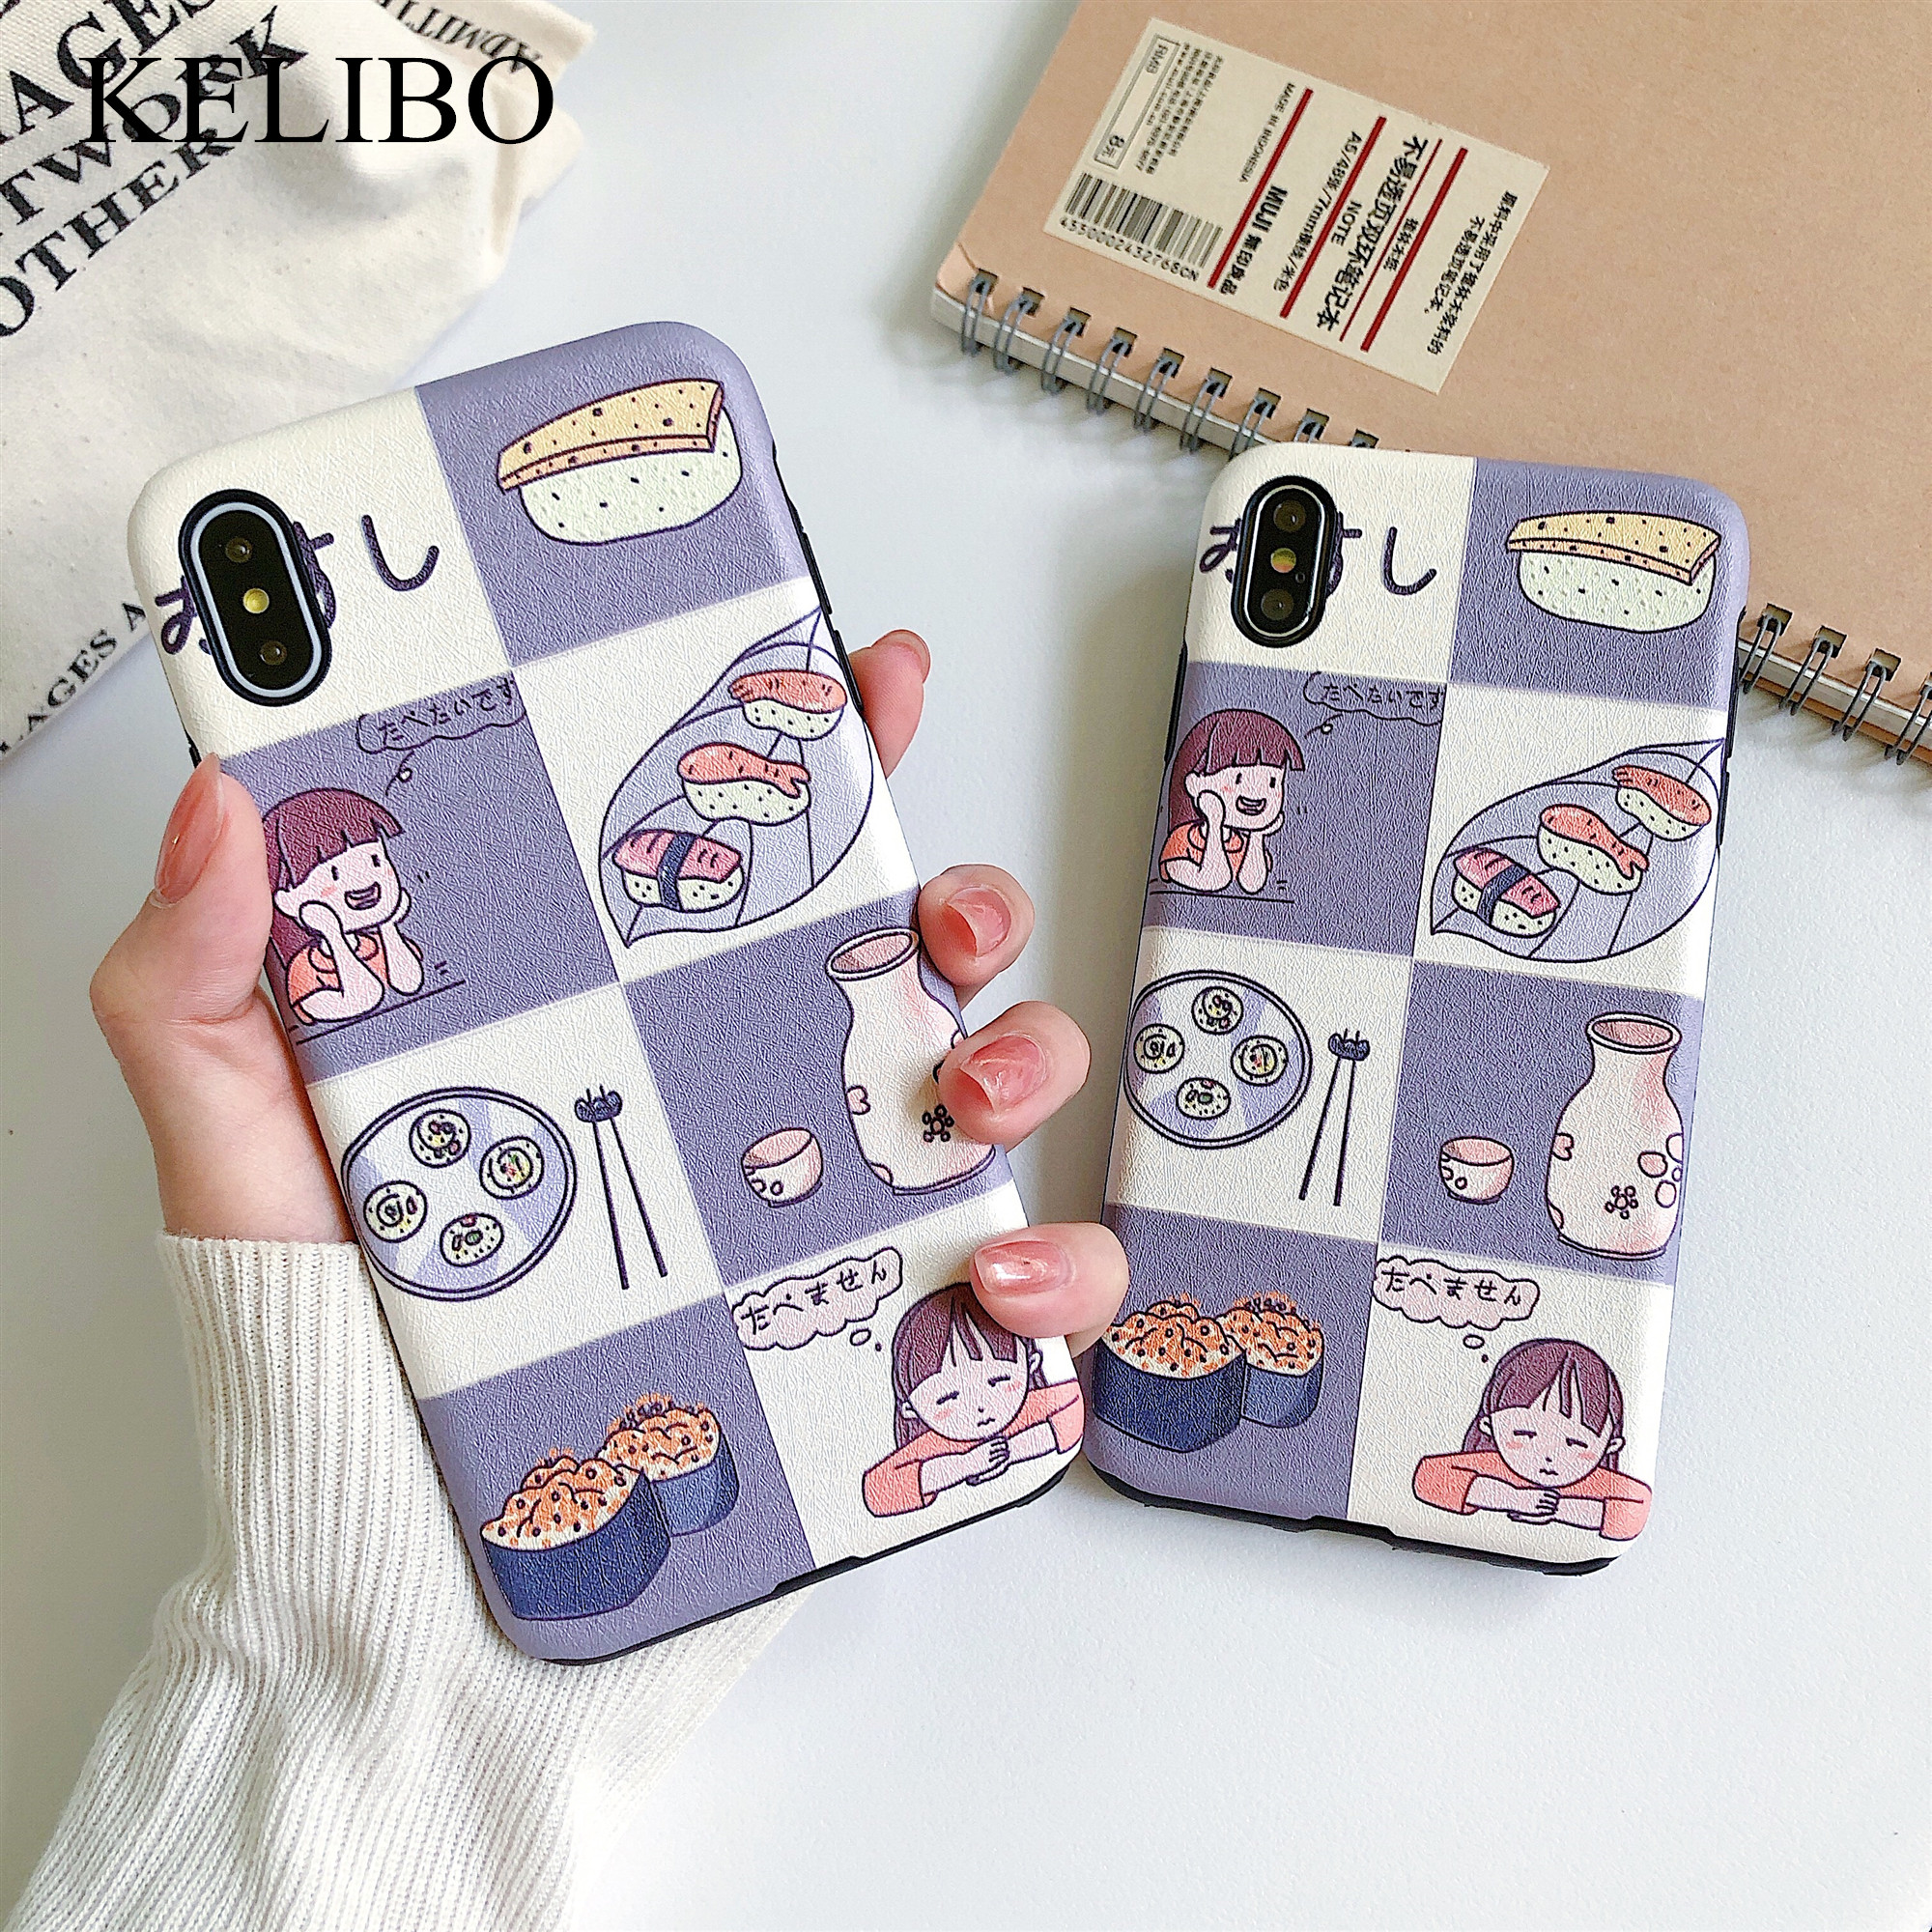 Kawaii Japanese anime illustration Phone Cases For iphone X XS Max XR Case <font><b>bts</b></font> Relief Cover For iPhone <font><b>6</b></font> 6s 7 8 Plus Fundas Capa image